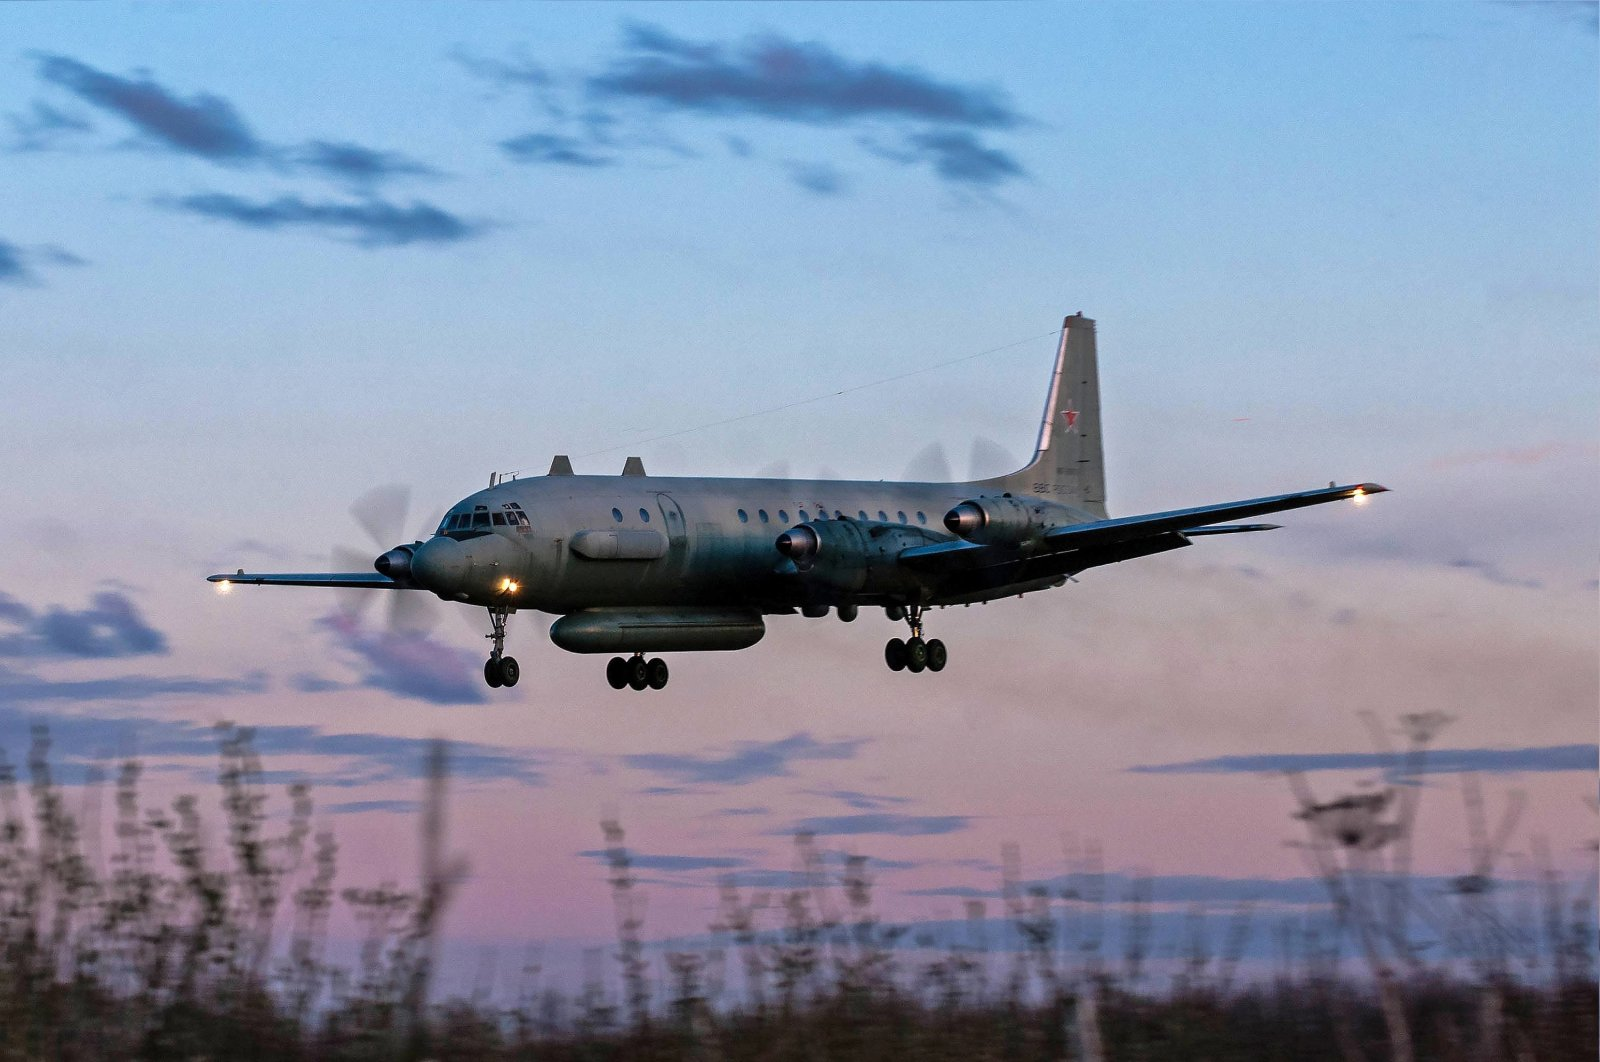 A photo taken on July 23, 2006 shows a Russian IL-20M (Ilyushin 20m) plane landing at an unknown location. (AFP Photo)